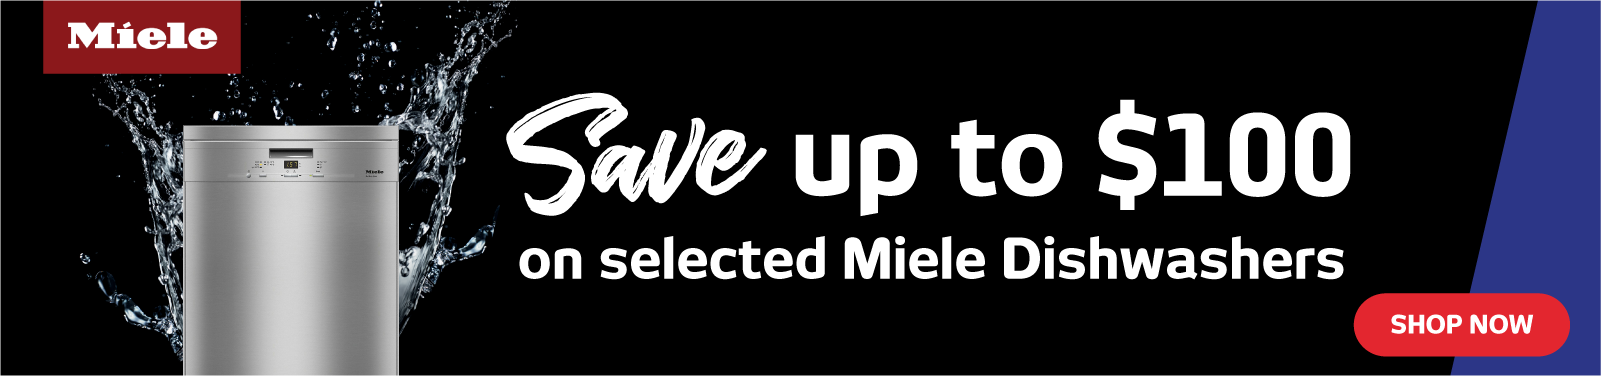 Save Up To $100 On Miele Dishwashers